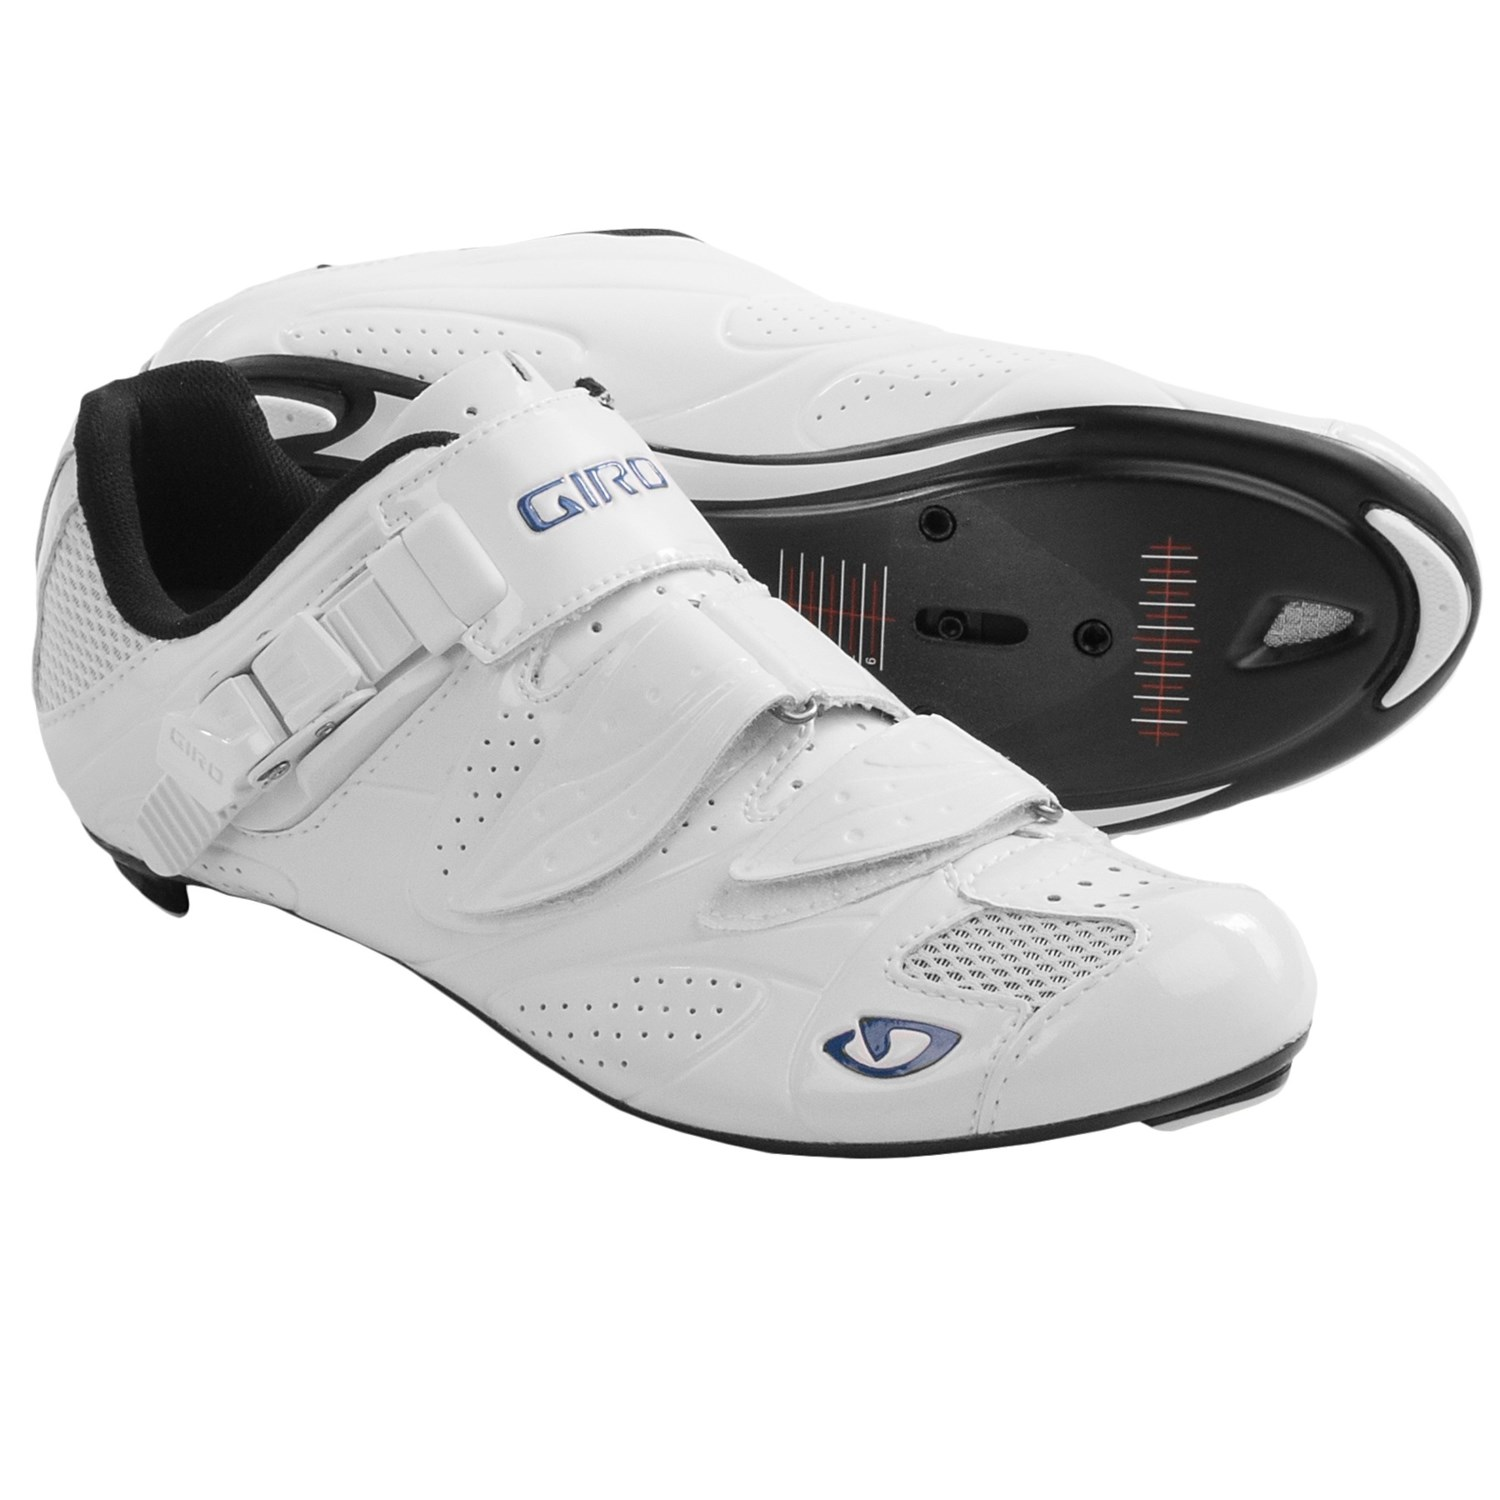 Choosing your Indoor cycling shoes - Stationary Bike Stand Guide